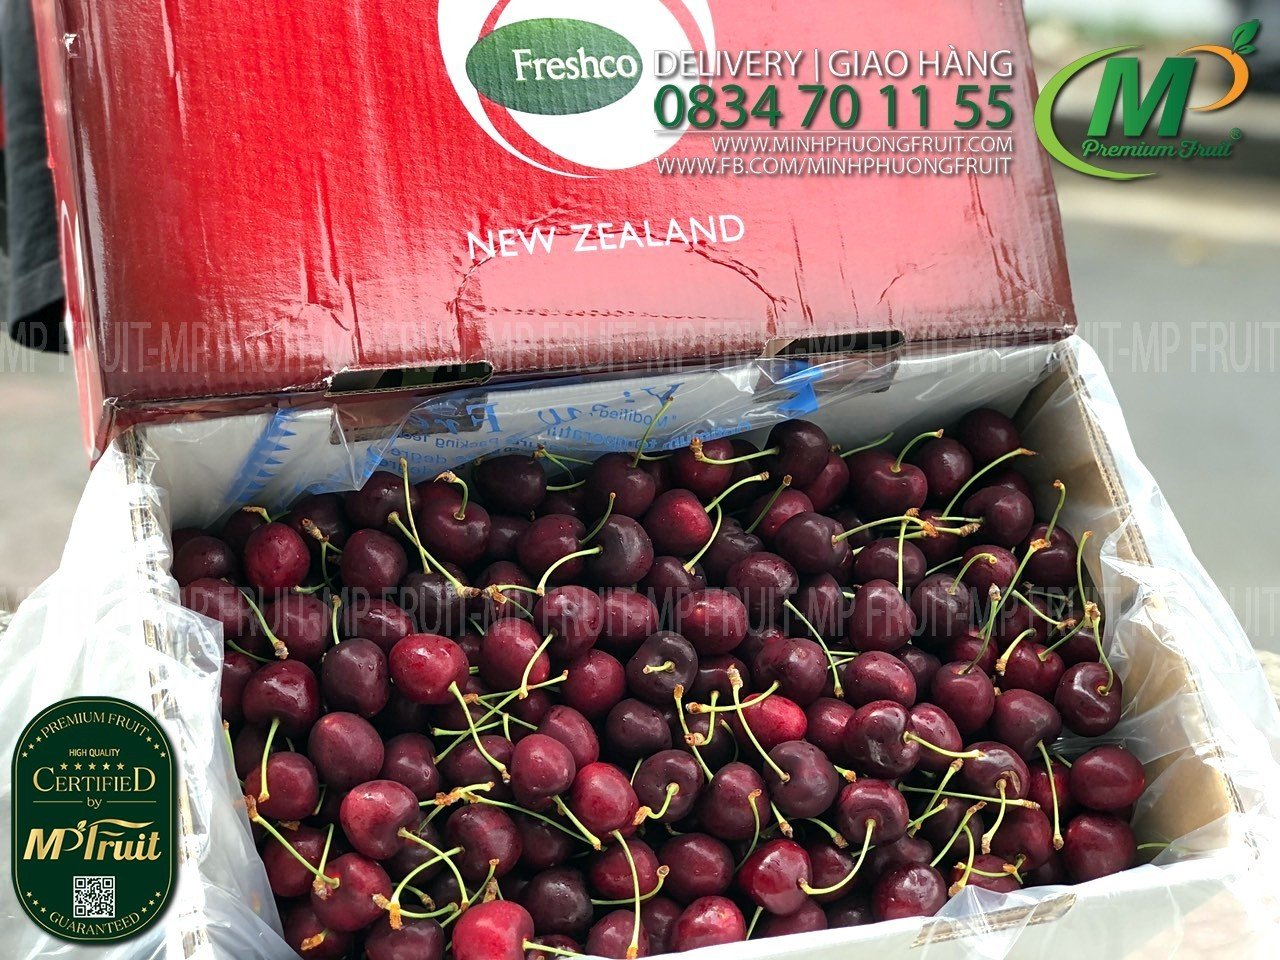 Cherry Đỏ New Zealand Size 28+ Freshco tại MP Fruits